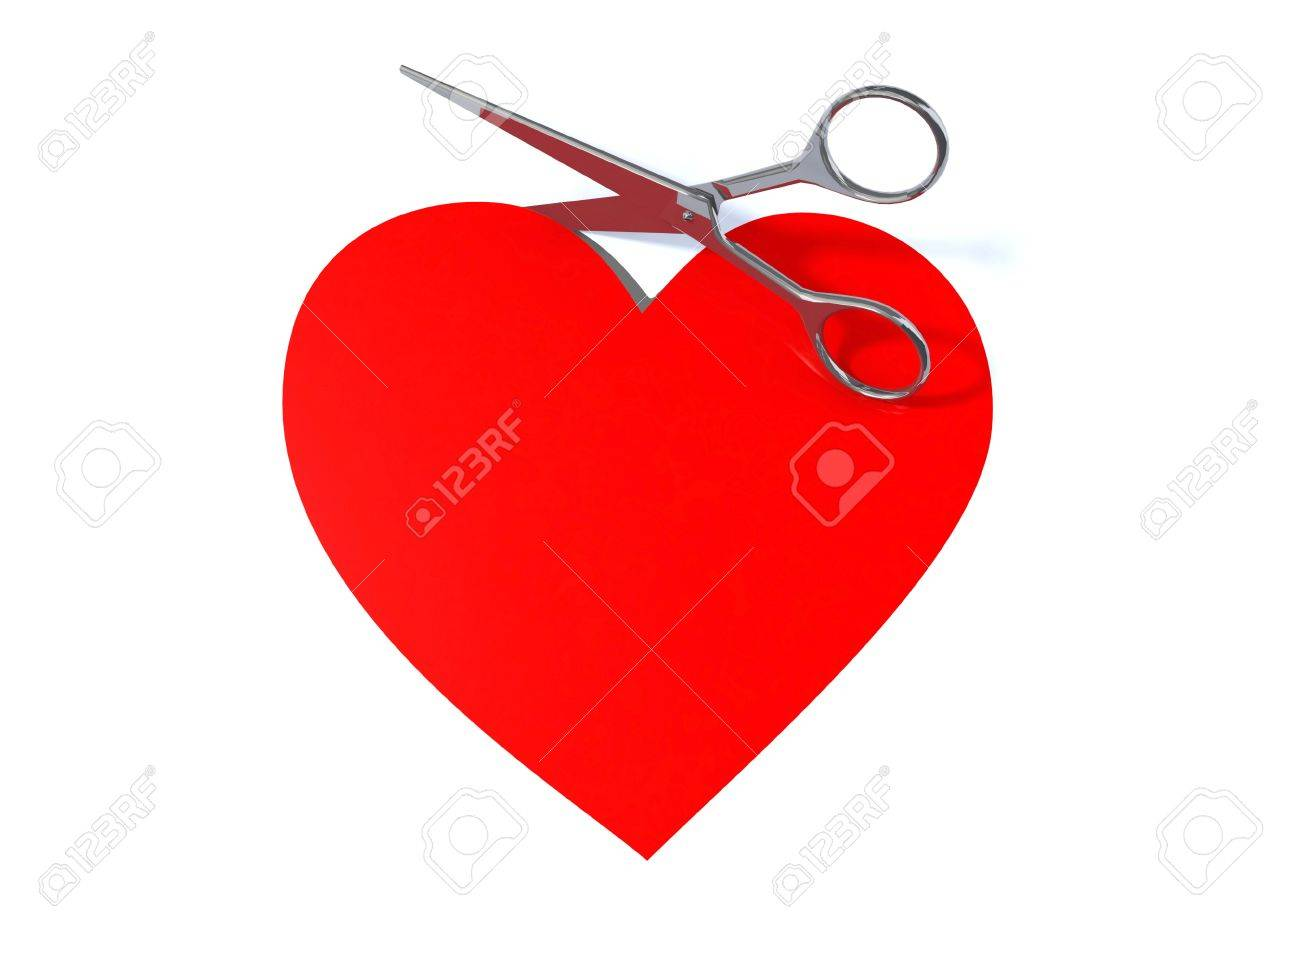 1300x975 Drawing Of A Heart Cut Out With Scissors, 3d Illustration Stock